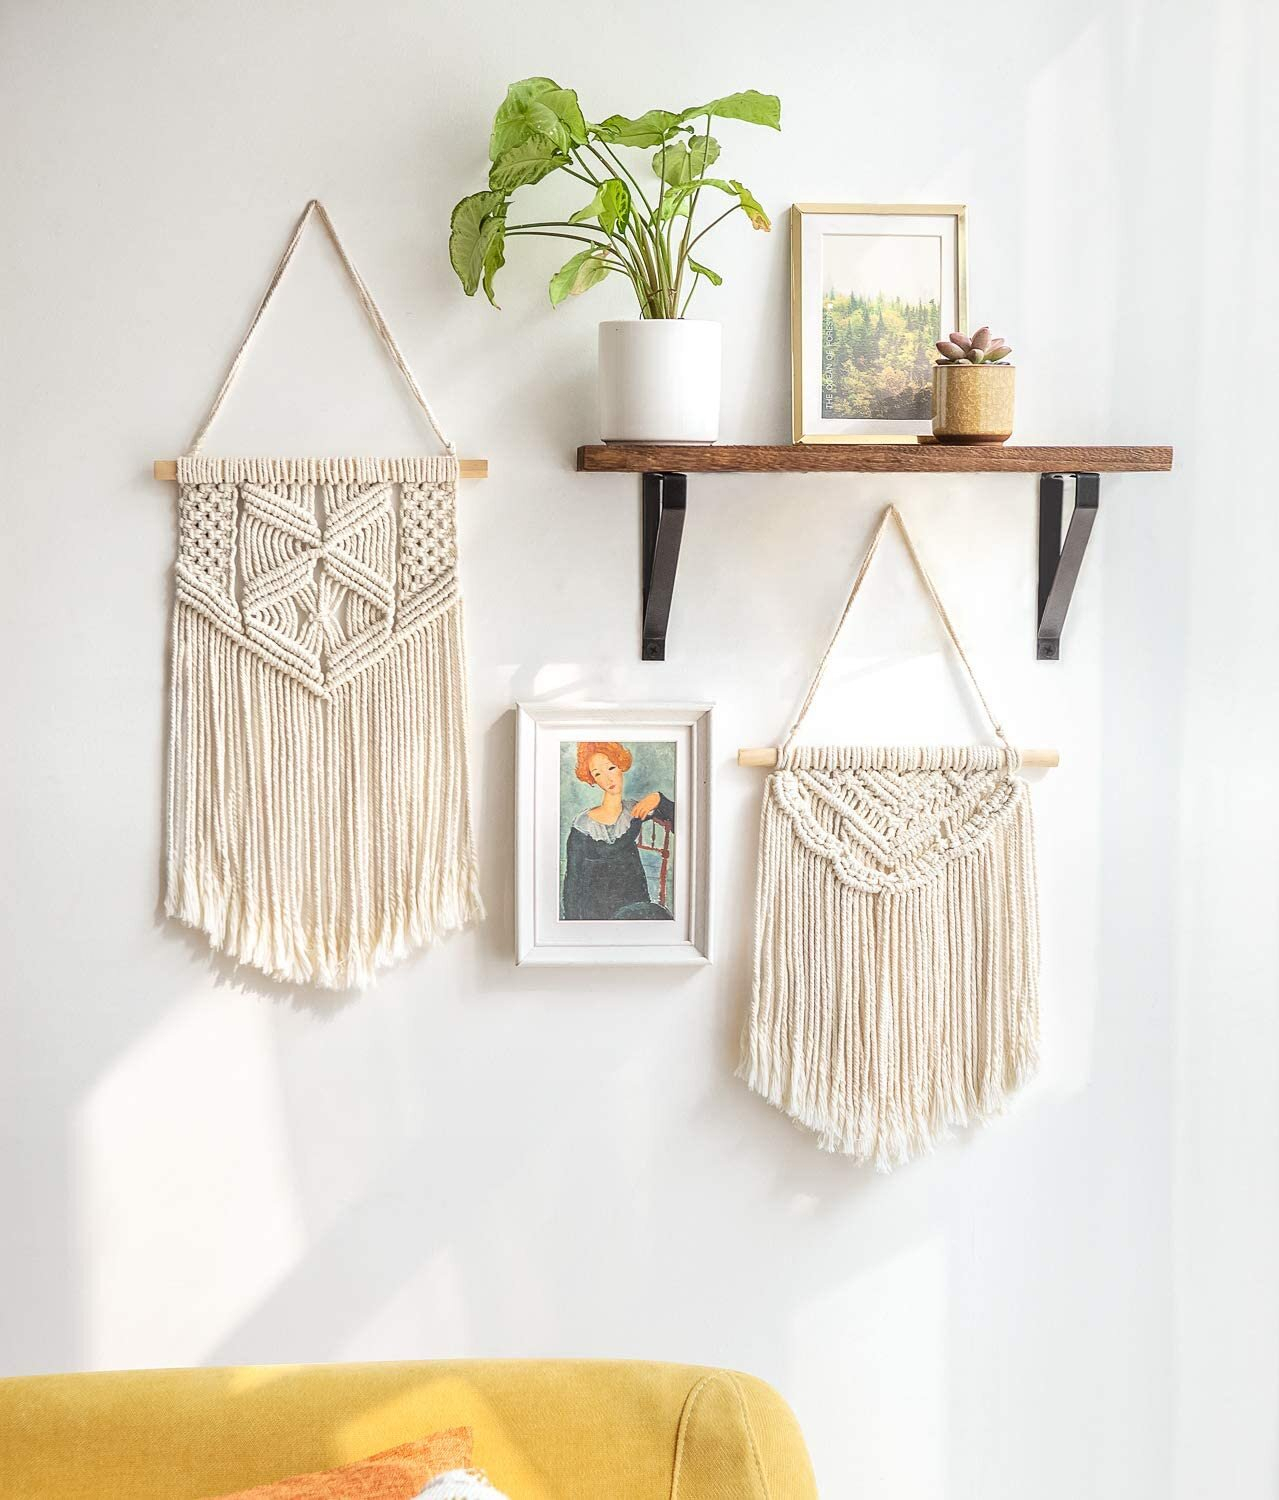 Rod Tan Tapestries You'll Love In 2021 | Wayfair With Regard To 2018 Blended Fabric Teresina Wool And Viscose Wall Hangings With Hanging Accessories Included (View 14 of 20)